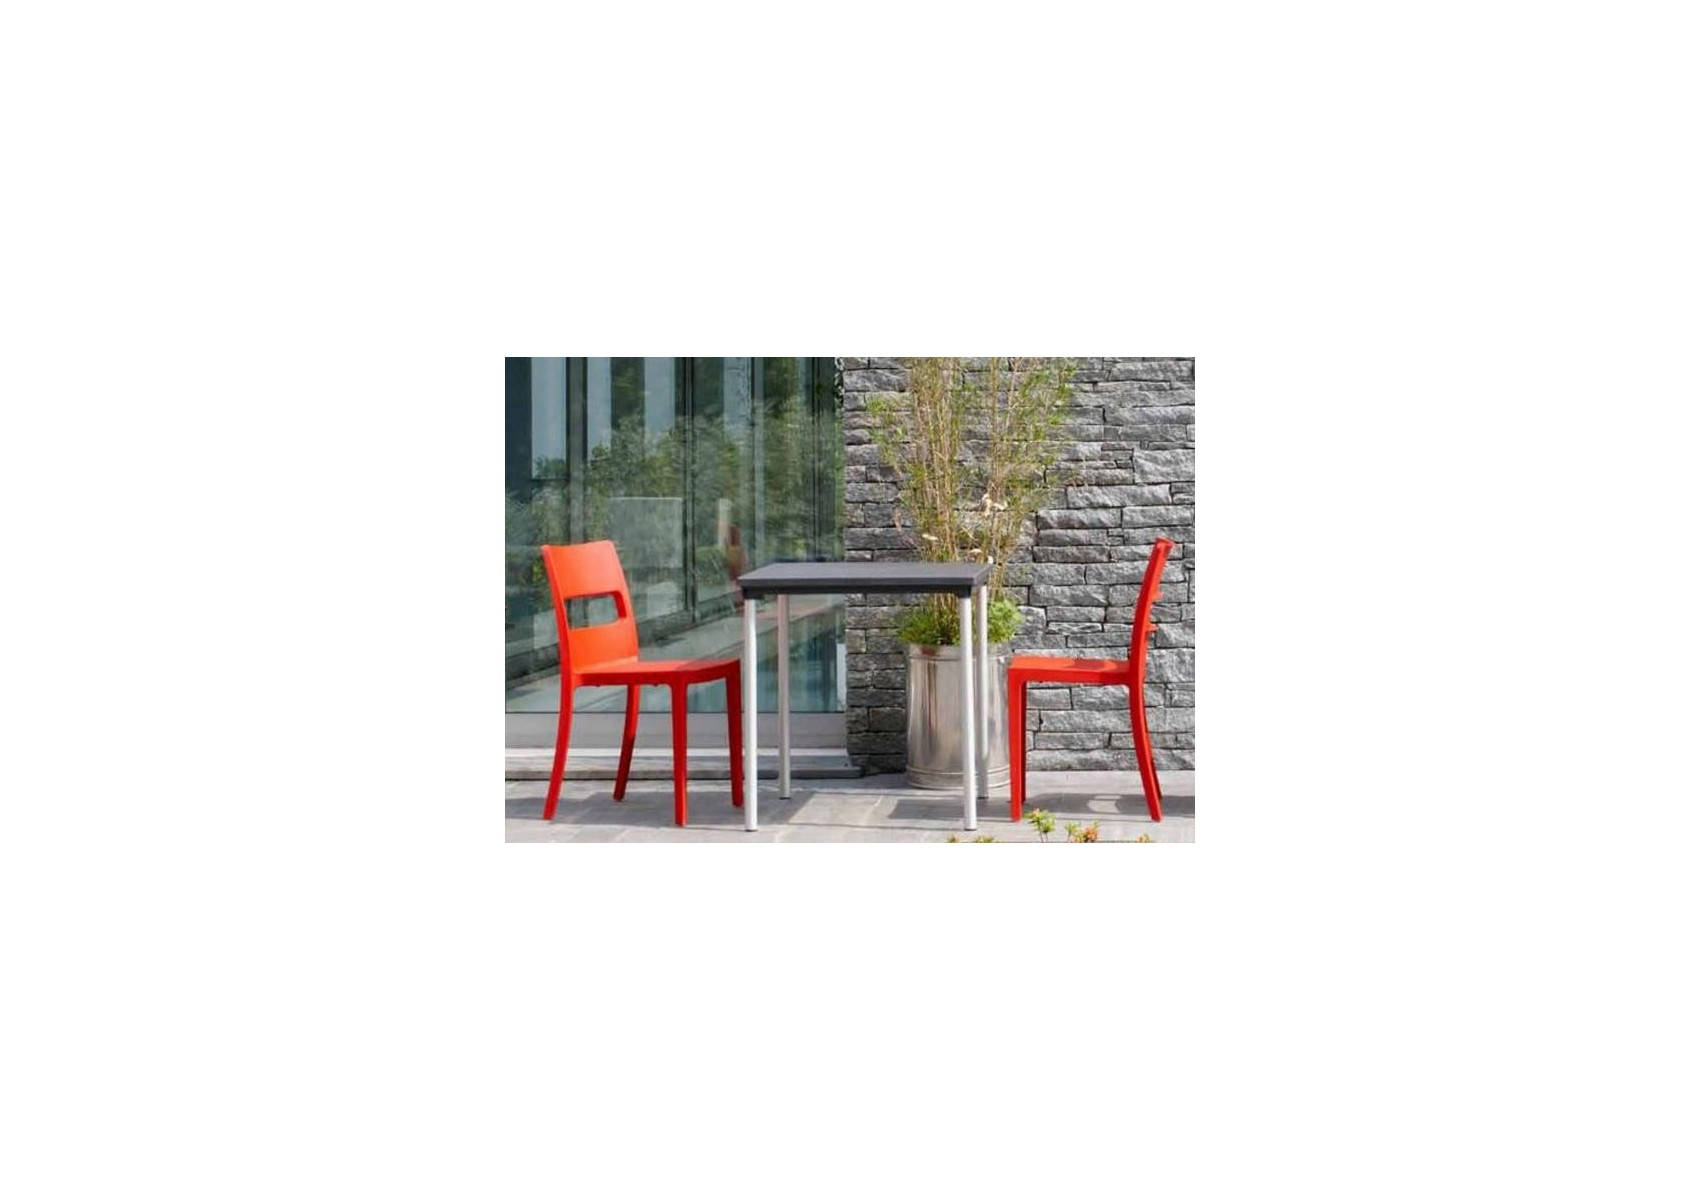 Destockage Chaise De Jardin 4 Chaises Design Sai Orange Destockage Boite à Design